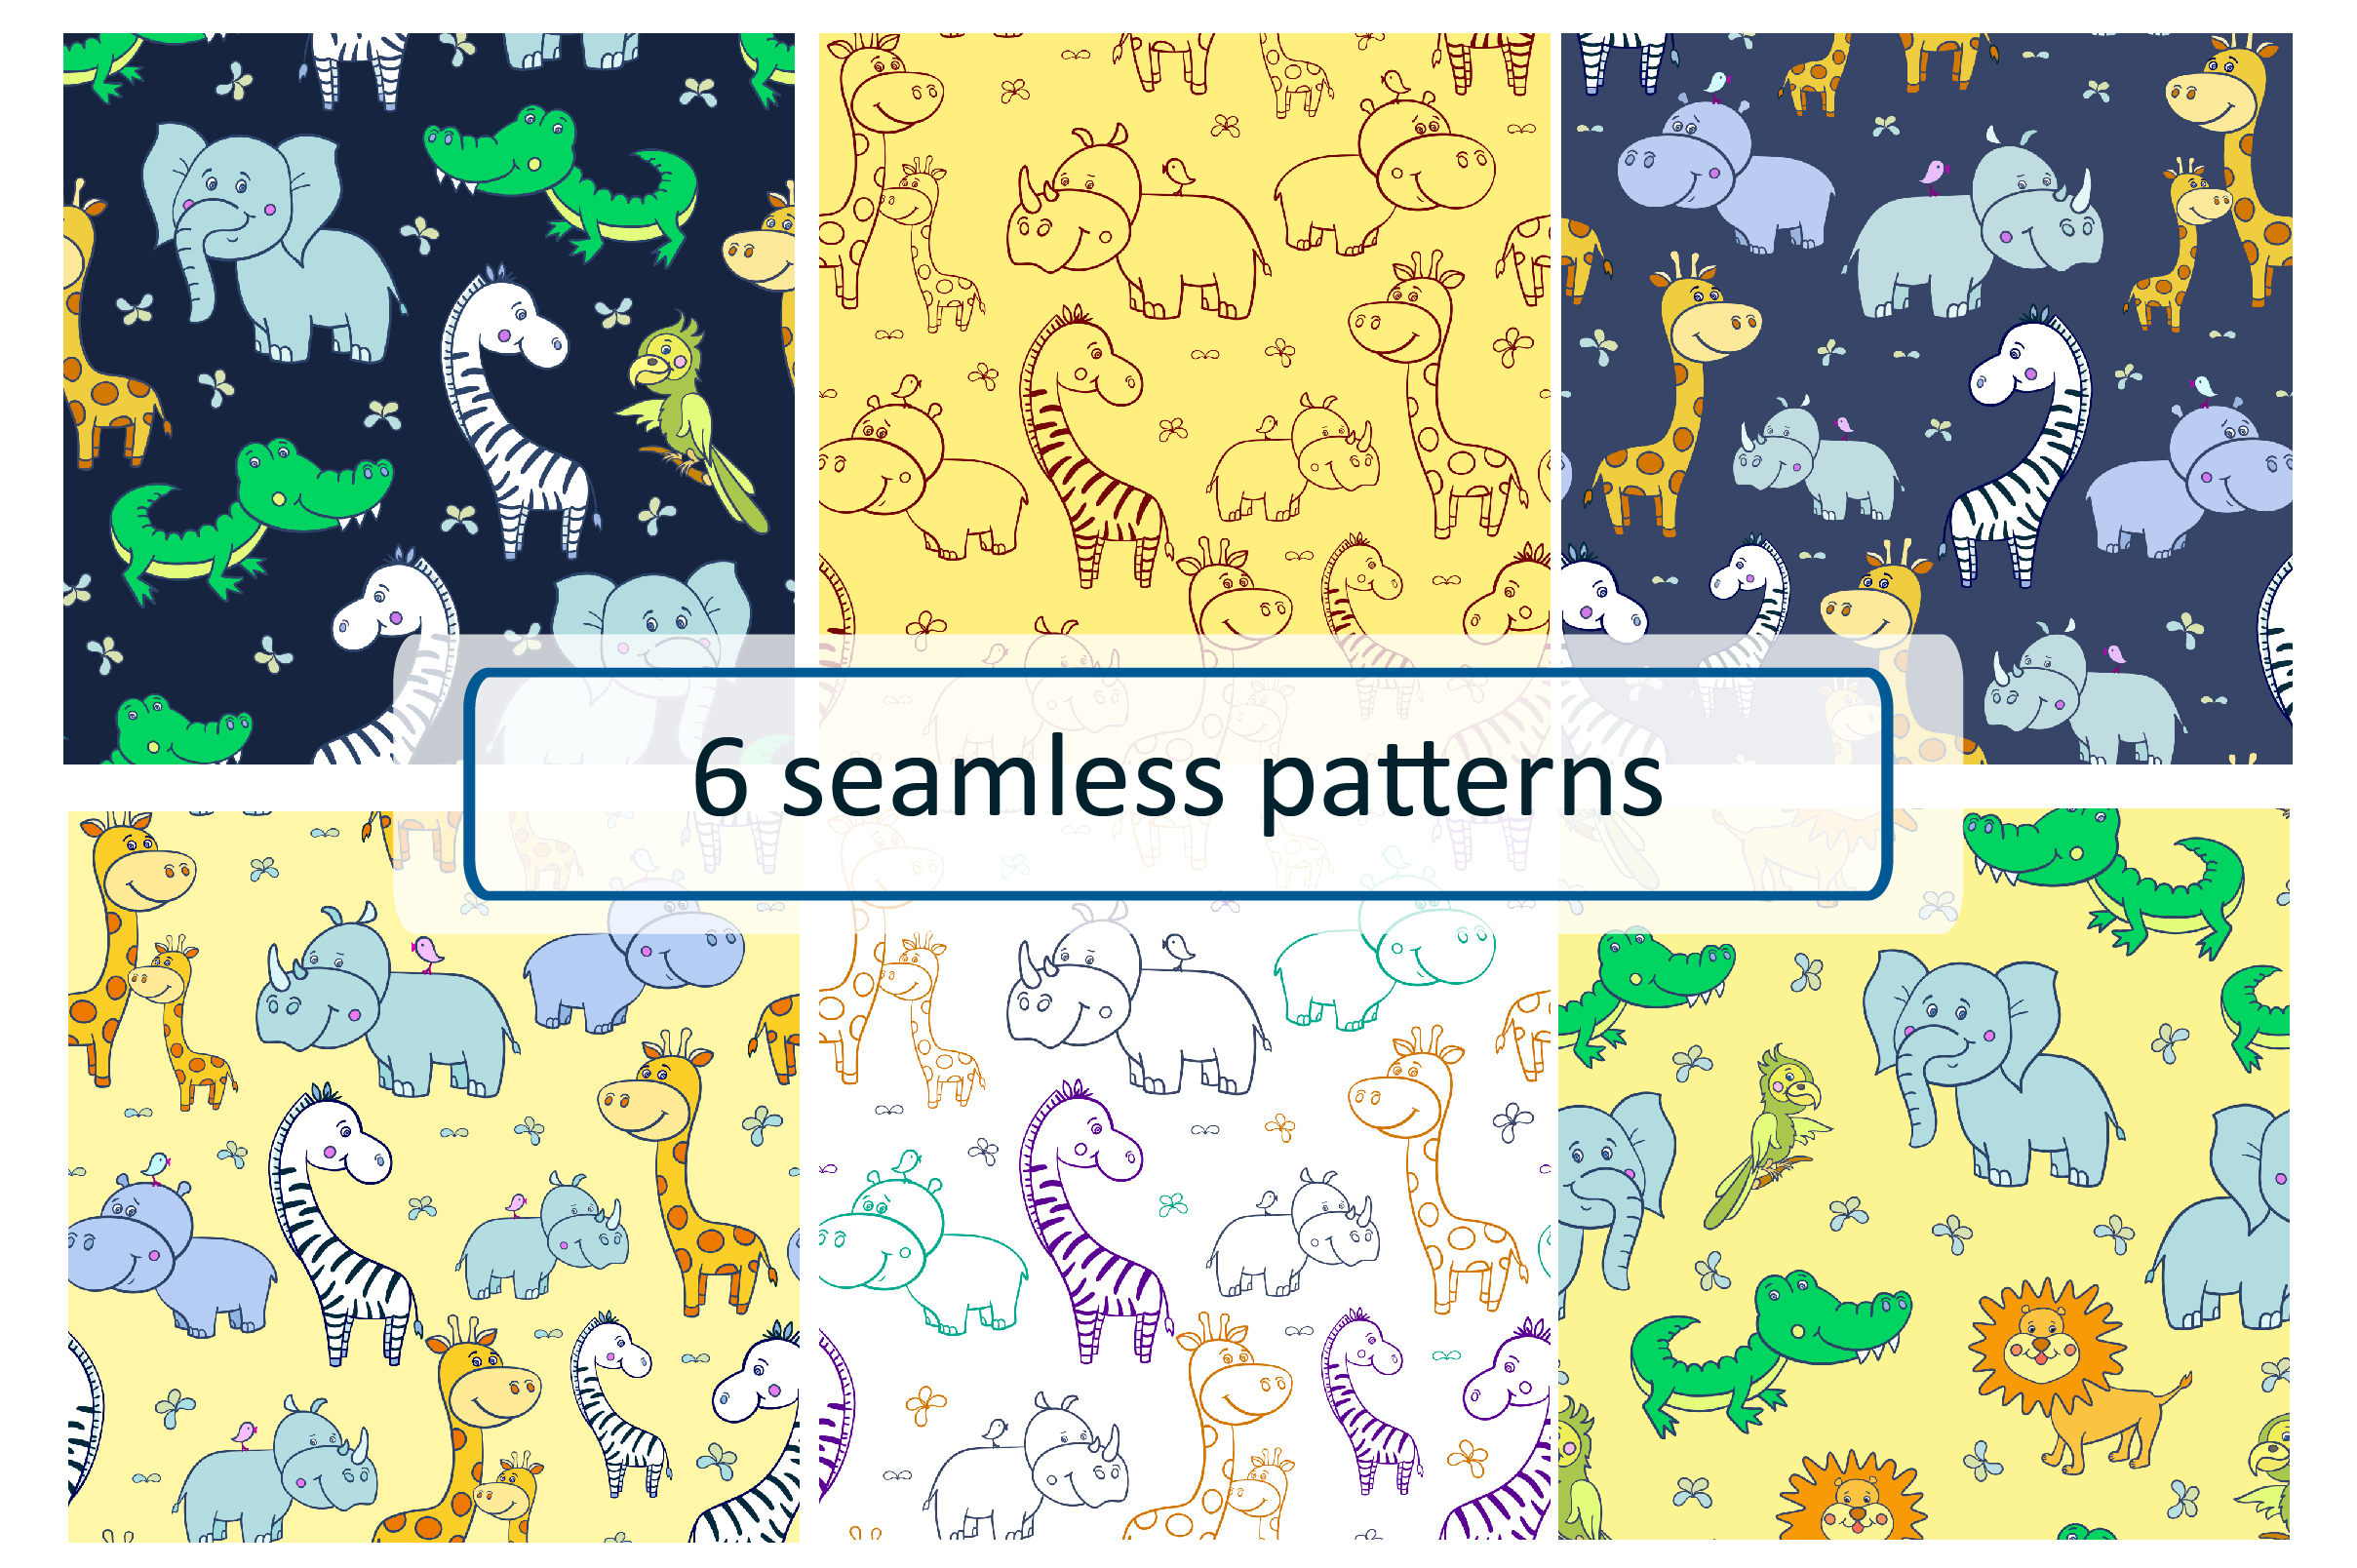 African animals. Seamless patterns. example image 1